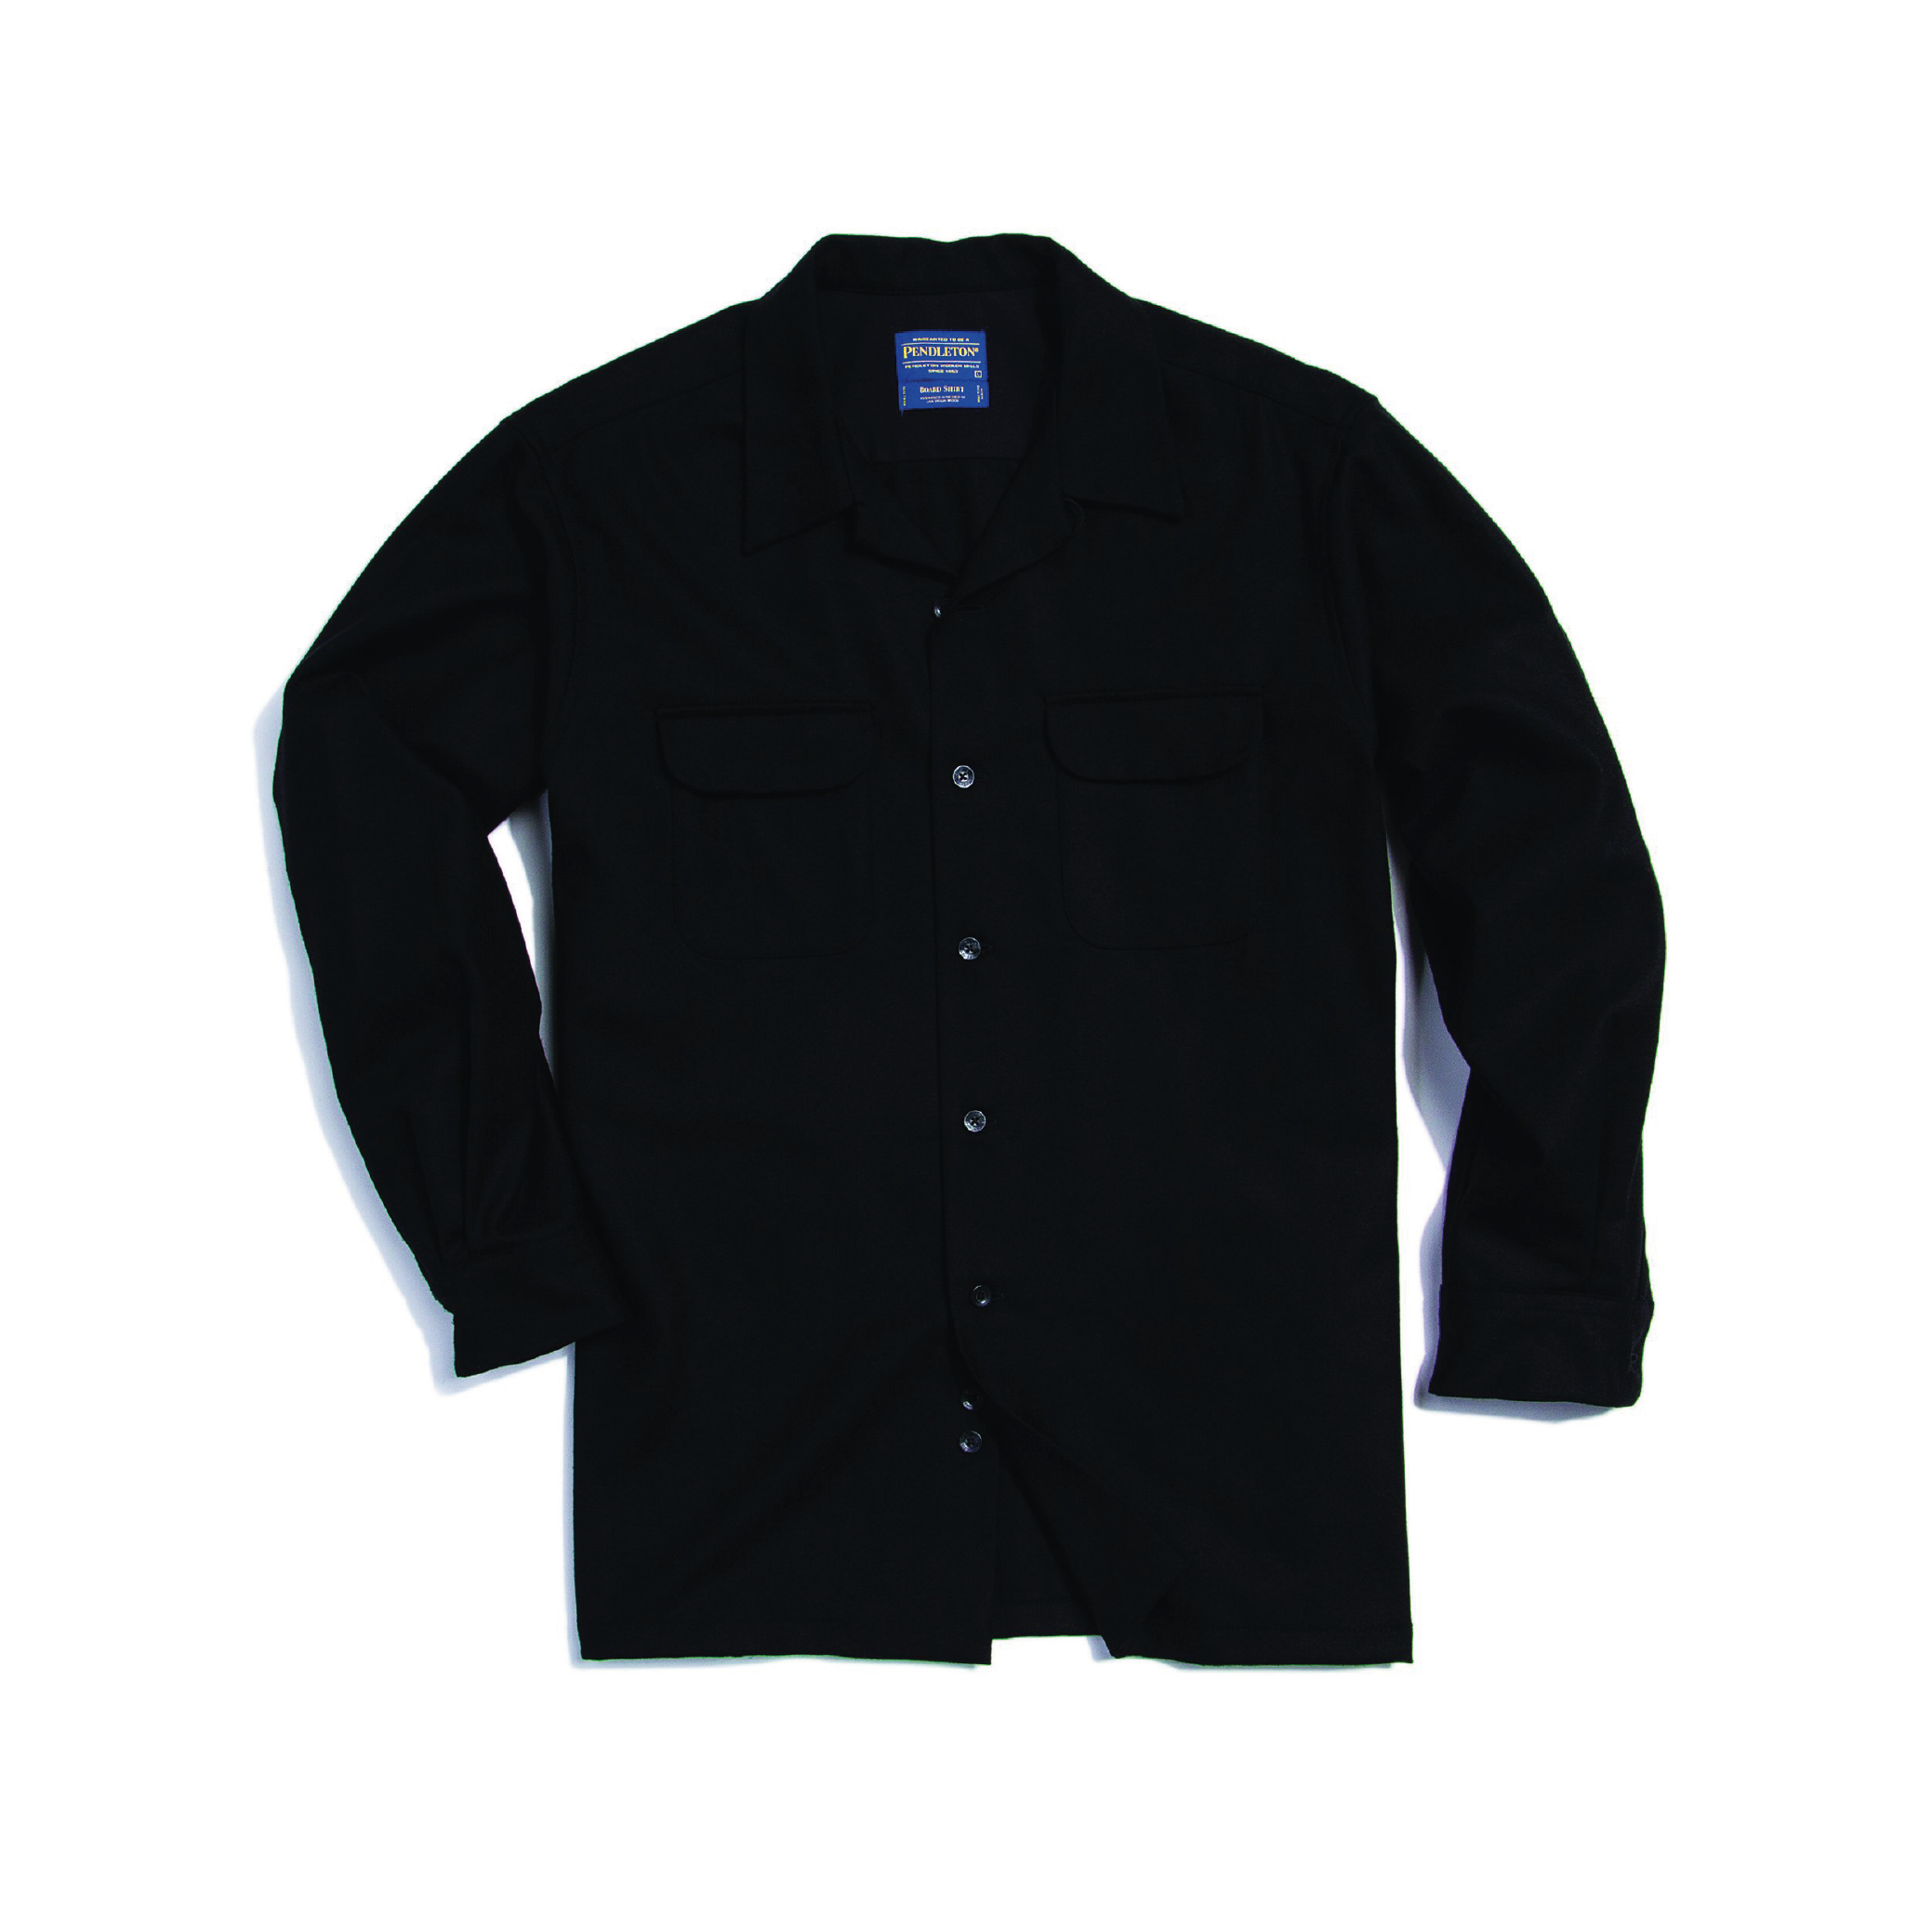 BLACK BOARDSHIRT    By  Pendleton     The original board shirt made famous by the beach boys, ready to tackle the woods, mountains, surf, and of course your daily commute.    SHOP NOW          £95